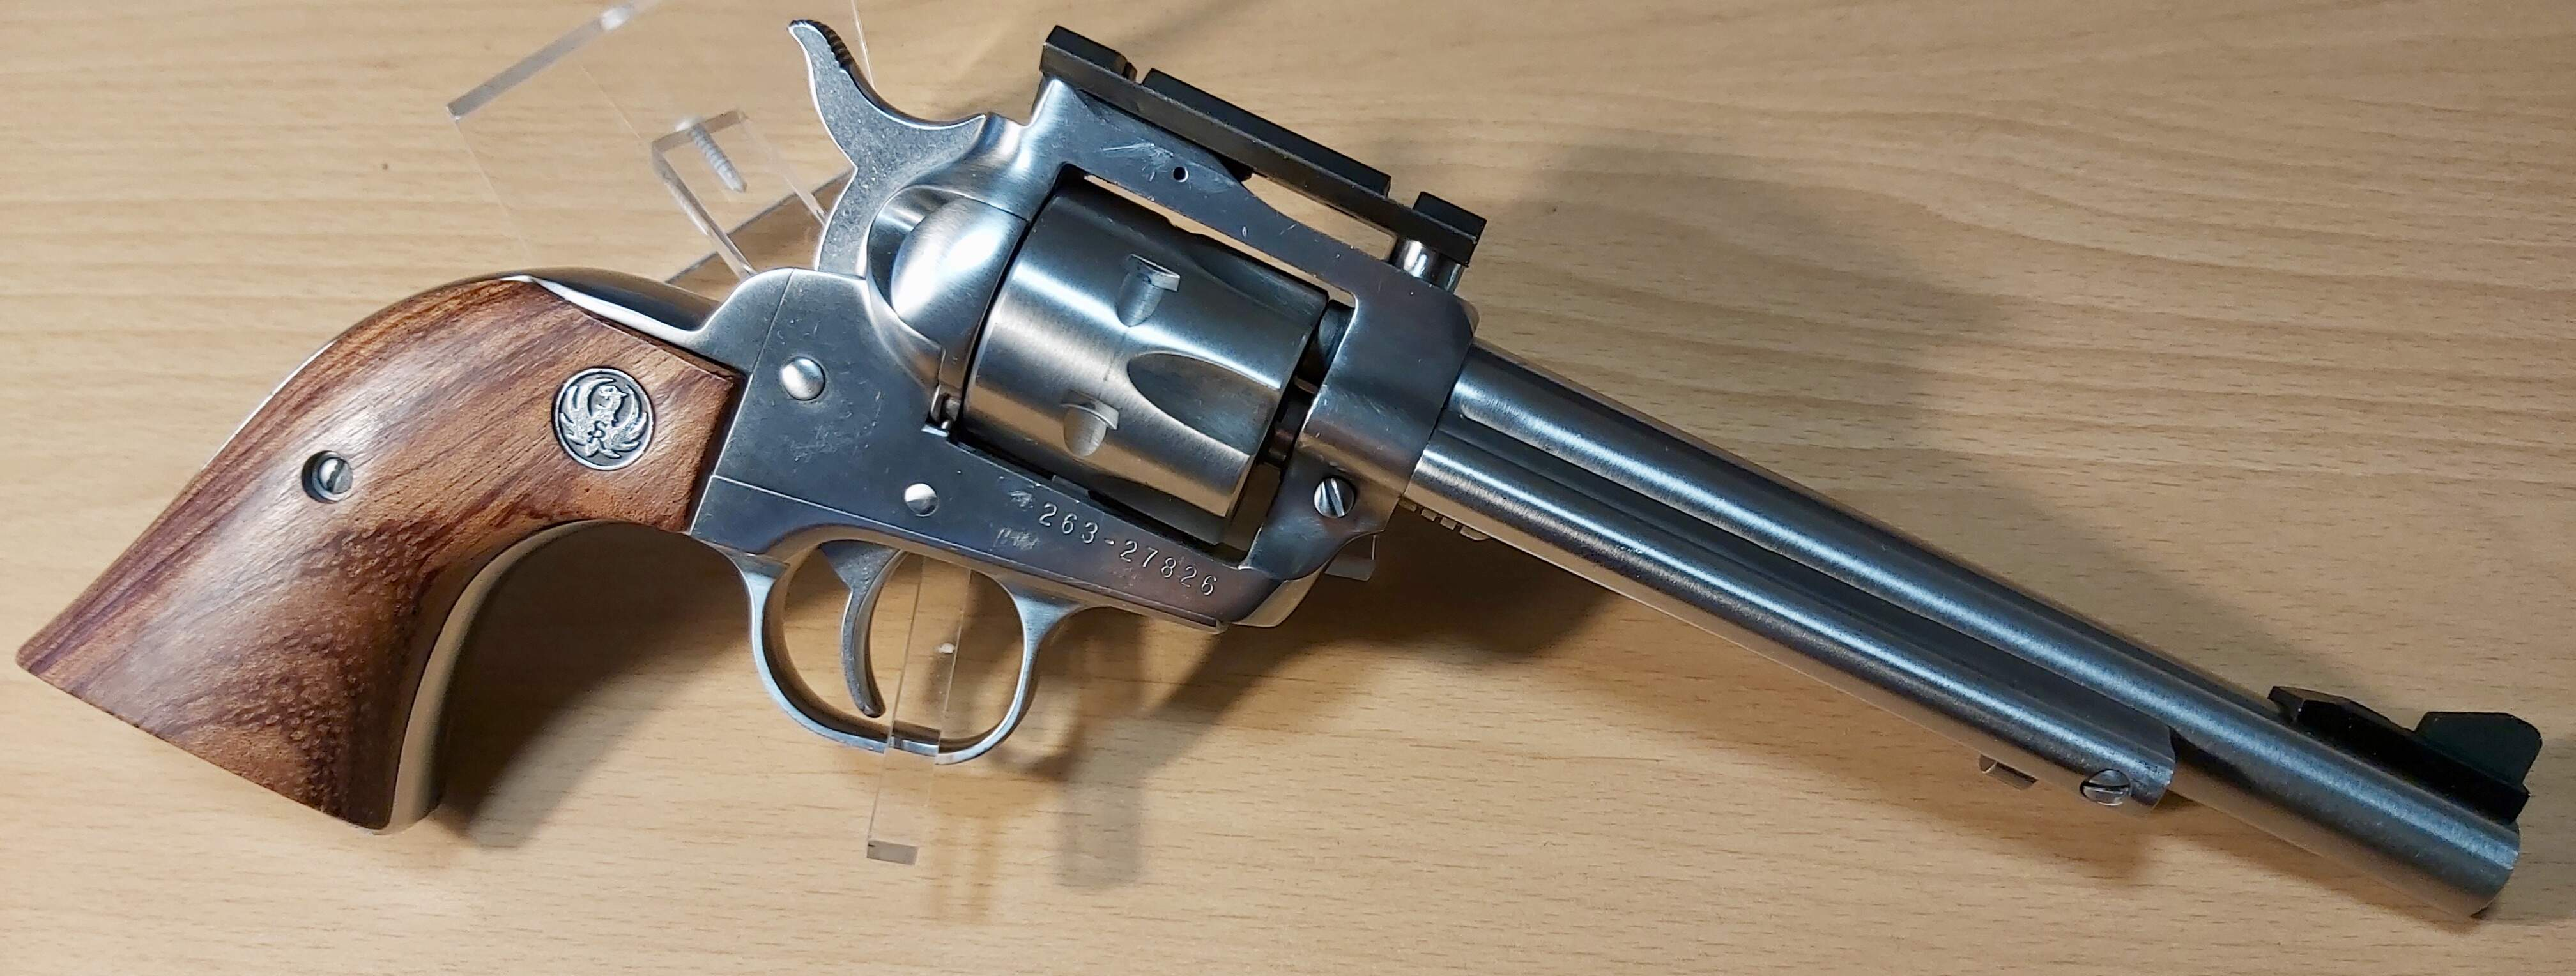 Ruger new model single six, .22lr, prijs 500€